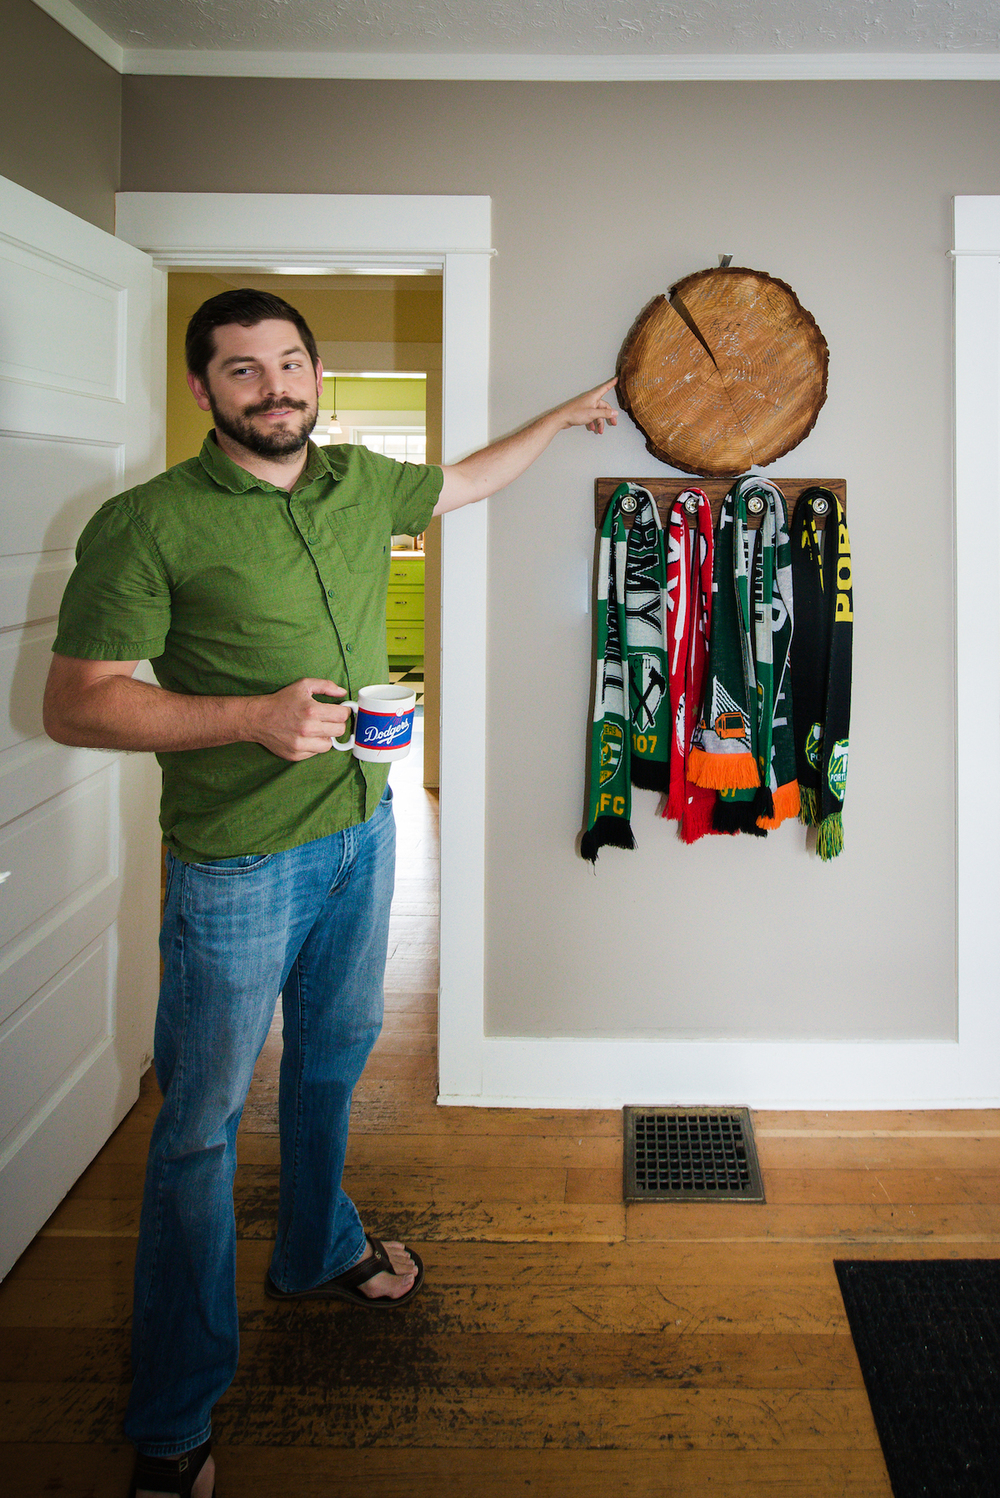 Sean is a proud member of the Timbers Army, with a wood-cookie signed by the team